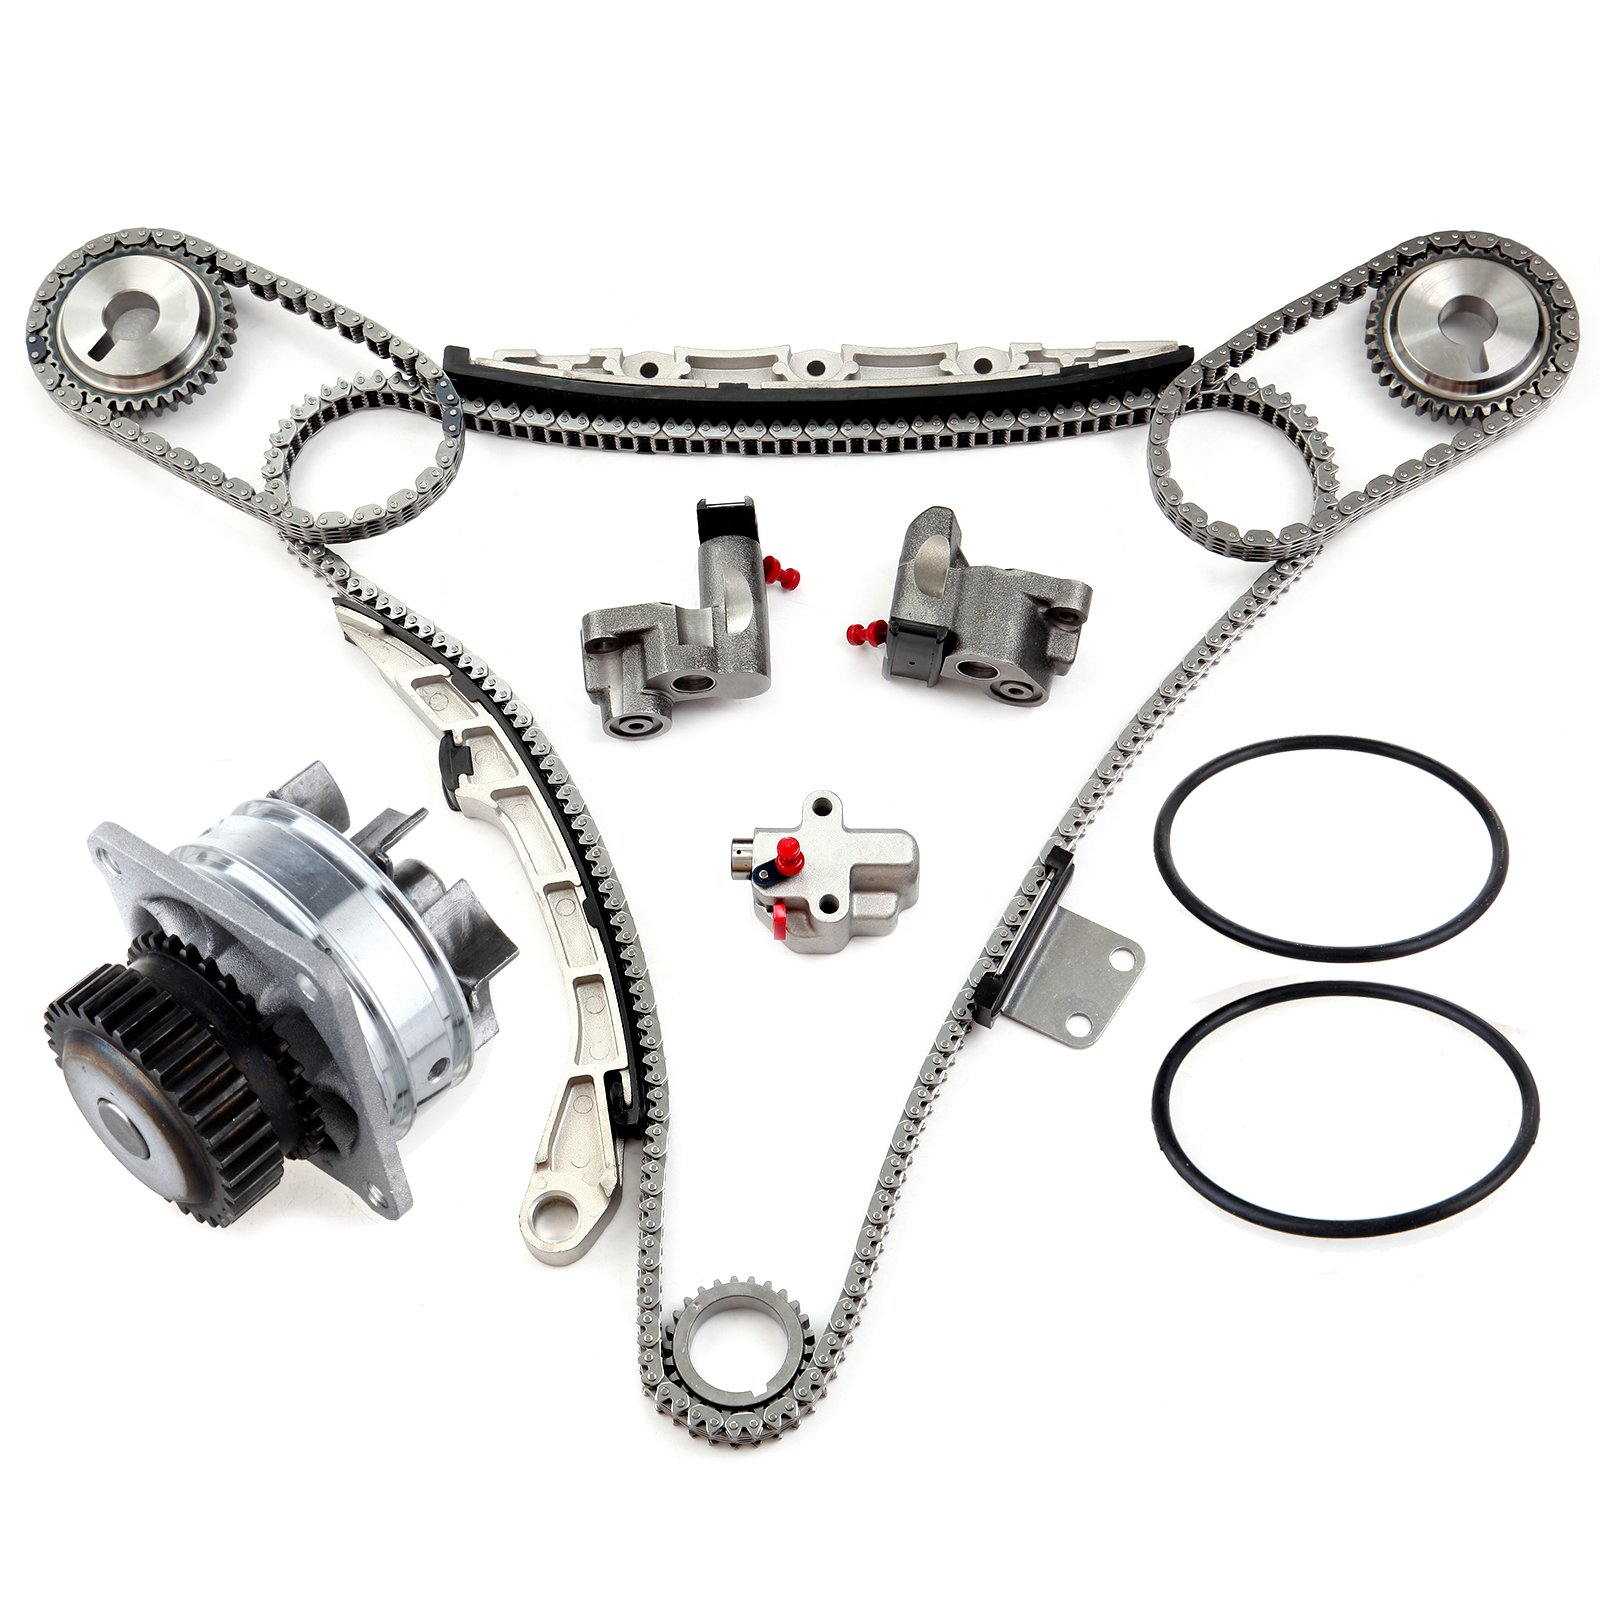 ECCPP Timing Chain Kit and Water Pump with gasket for 2002 - 2007 Nissan Murano 350Z Maxima VQ35DE 3.5L